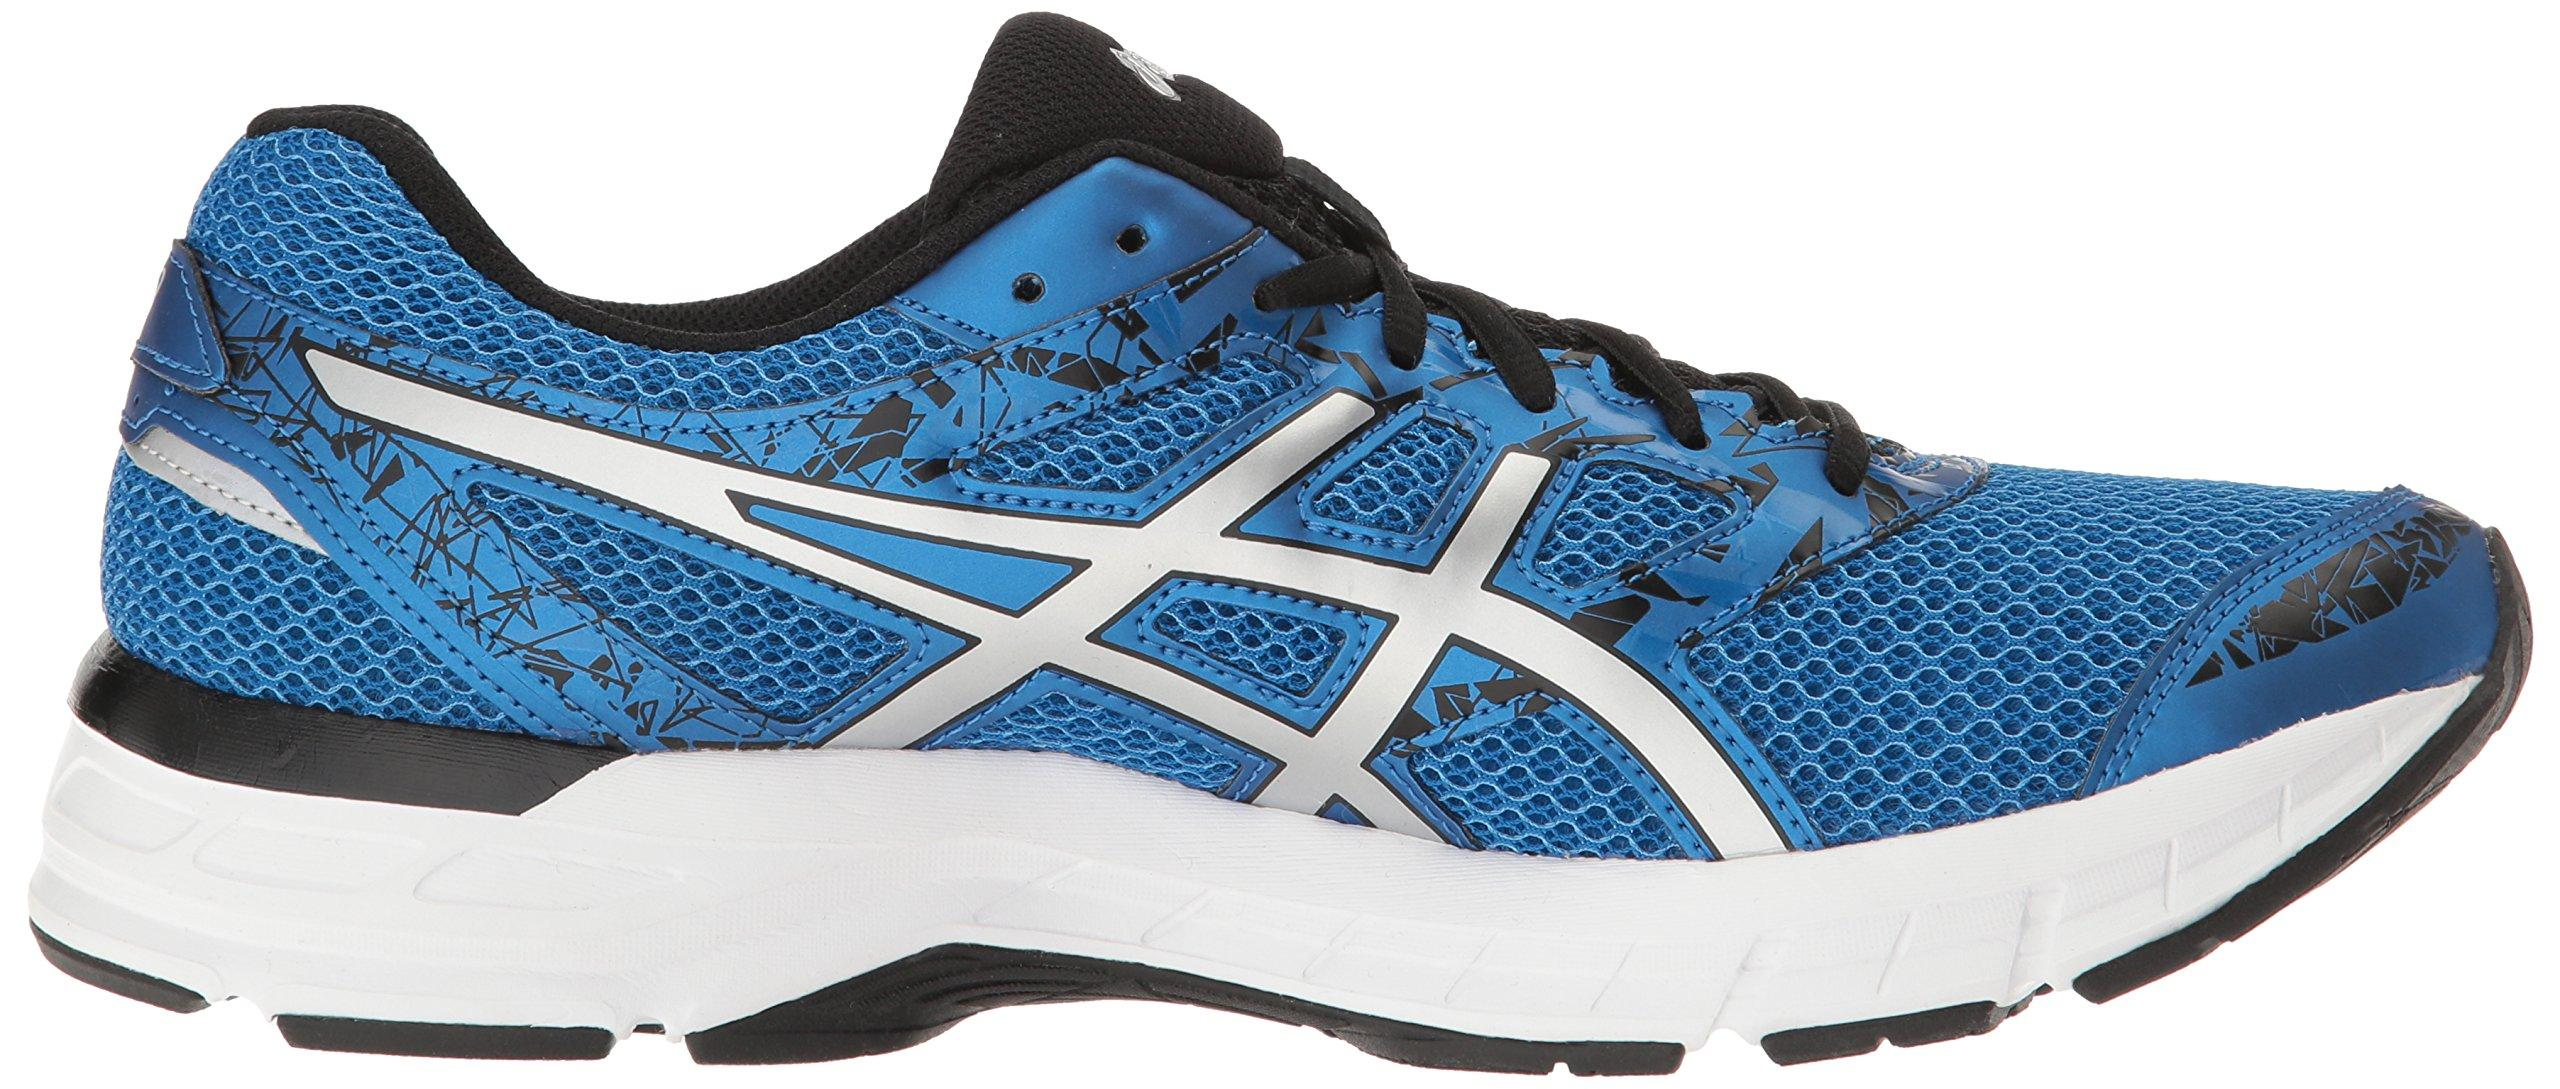 new products c8ebd 12a16 SCARPE ASICS GEL-EXCITE 4 CLASSICS BLUE SILVER/BLACK T6E3N4293 RUNNING